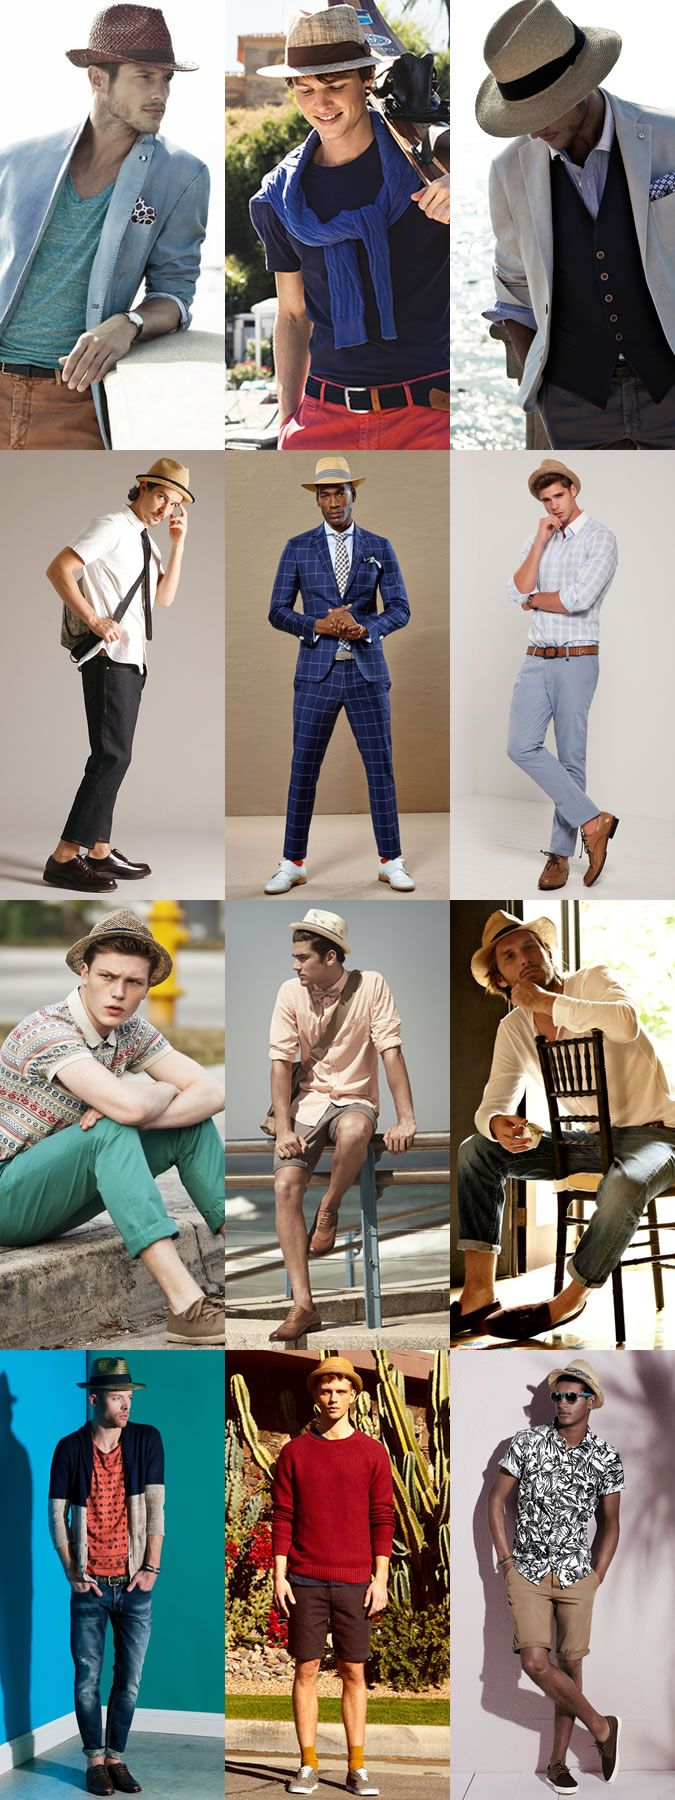 2014 Men's Summer Hats: The Straw Fedora Lookbook Inspiration